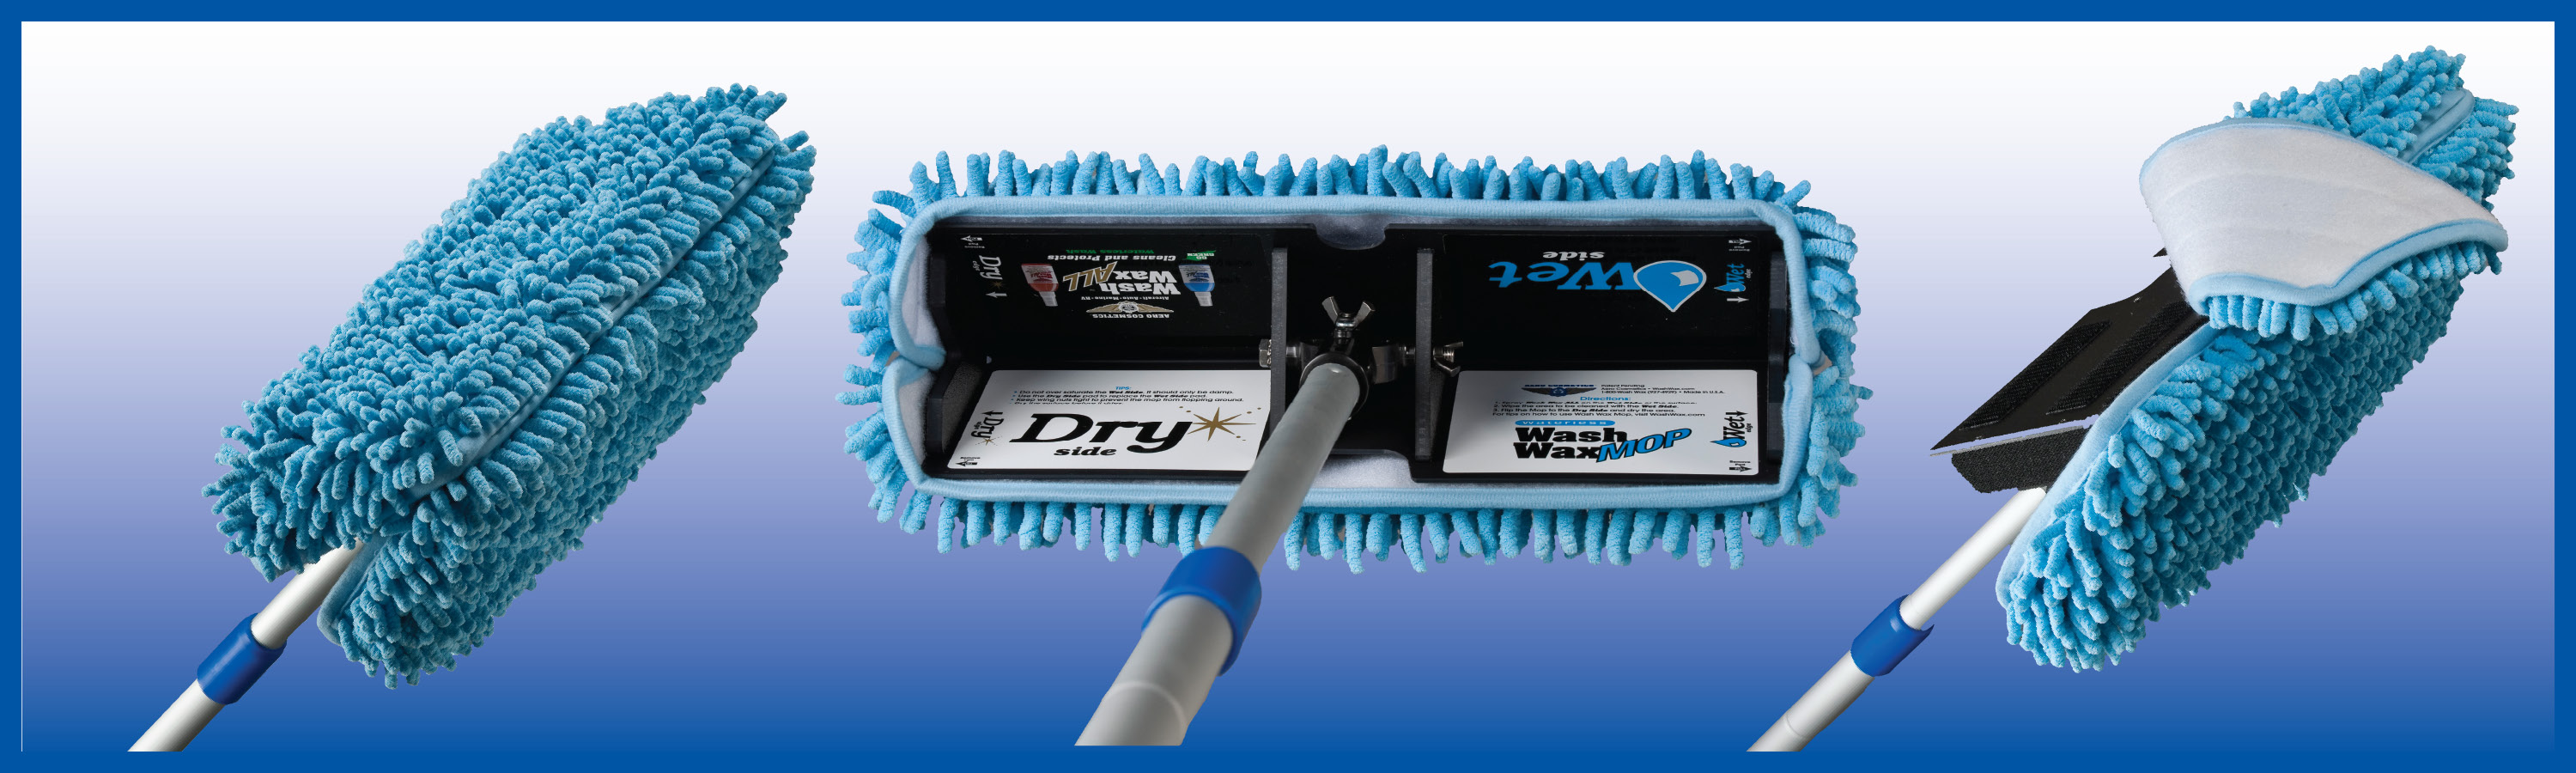 New Wash Wax Mop Advances Waterless Aircraft Cleaning